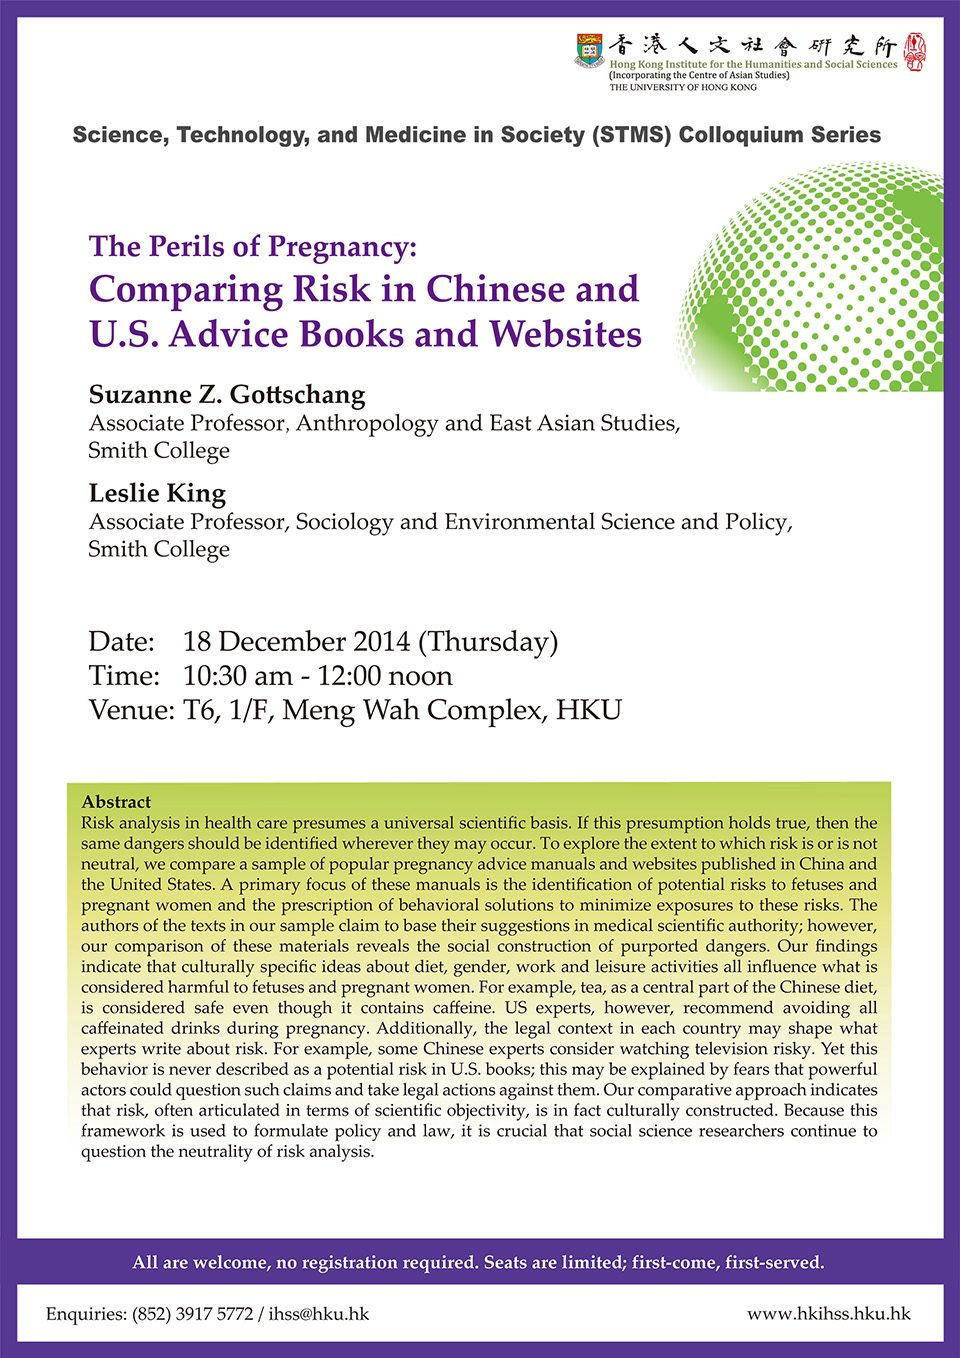 "STMS Colloquium Series Lecture on ""The Perils of Pregnancy: Comparing Risk in Chinese and U.S. Advice Books and Websites"" by Dr. Suzanne Z. Gottschang (December 18, 2014)"